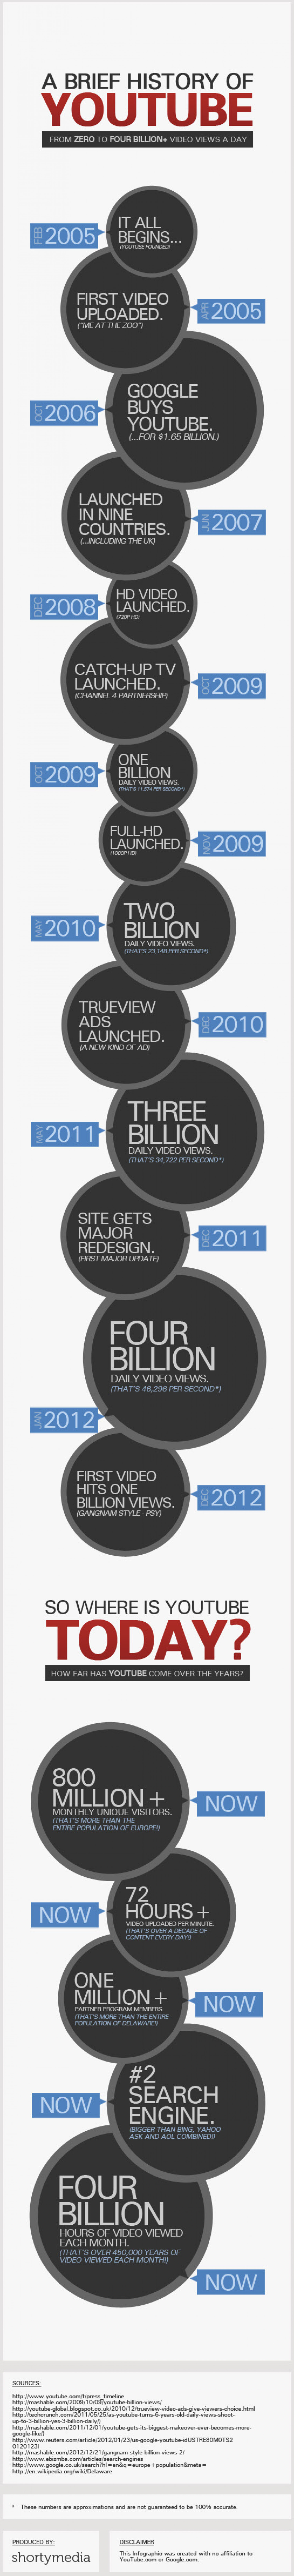 A Brief History of YouTube Infographic